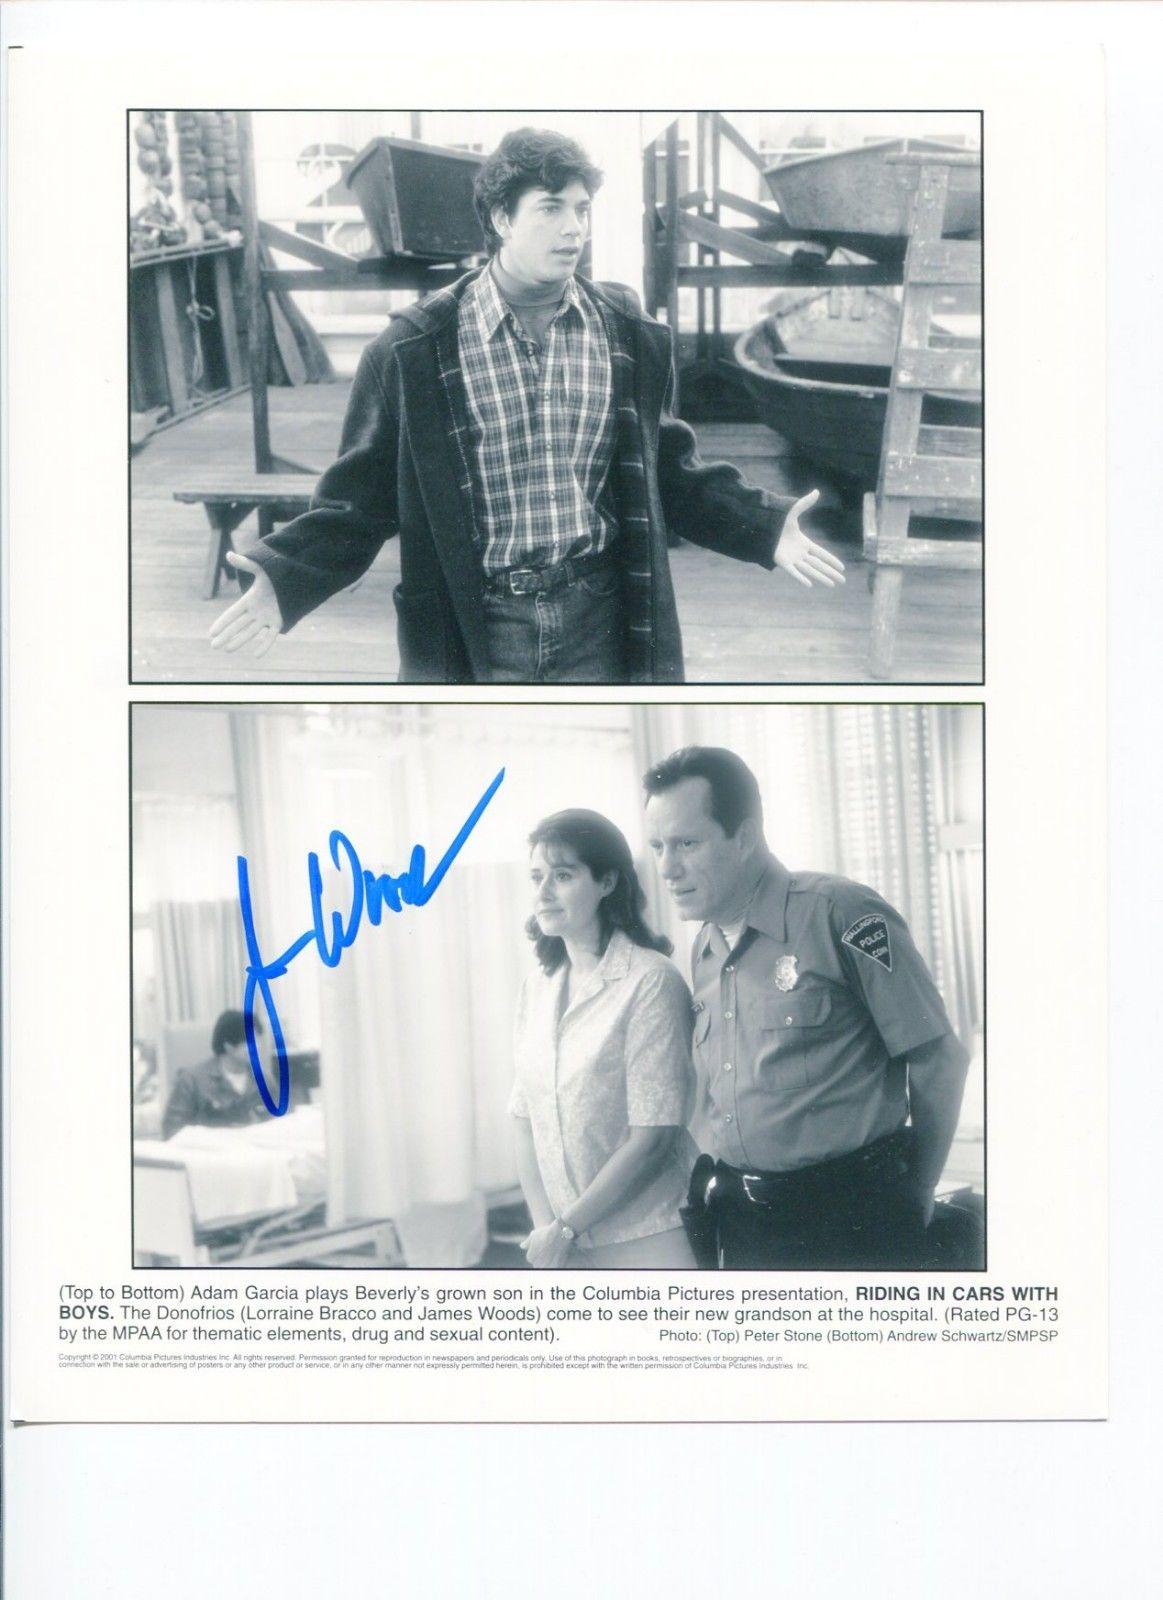 James Woods Oscar Nominee Riding In Car With Boys Signed Autograph Photo